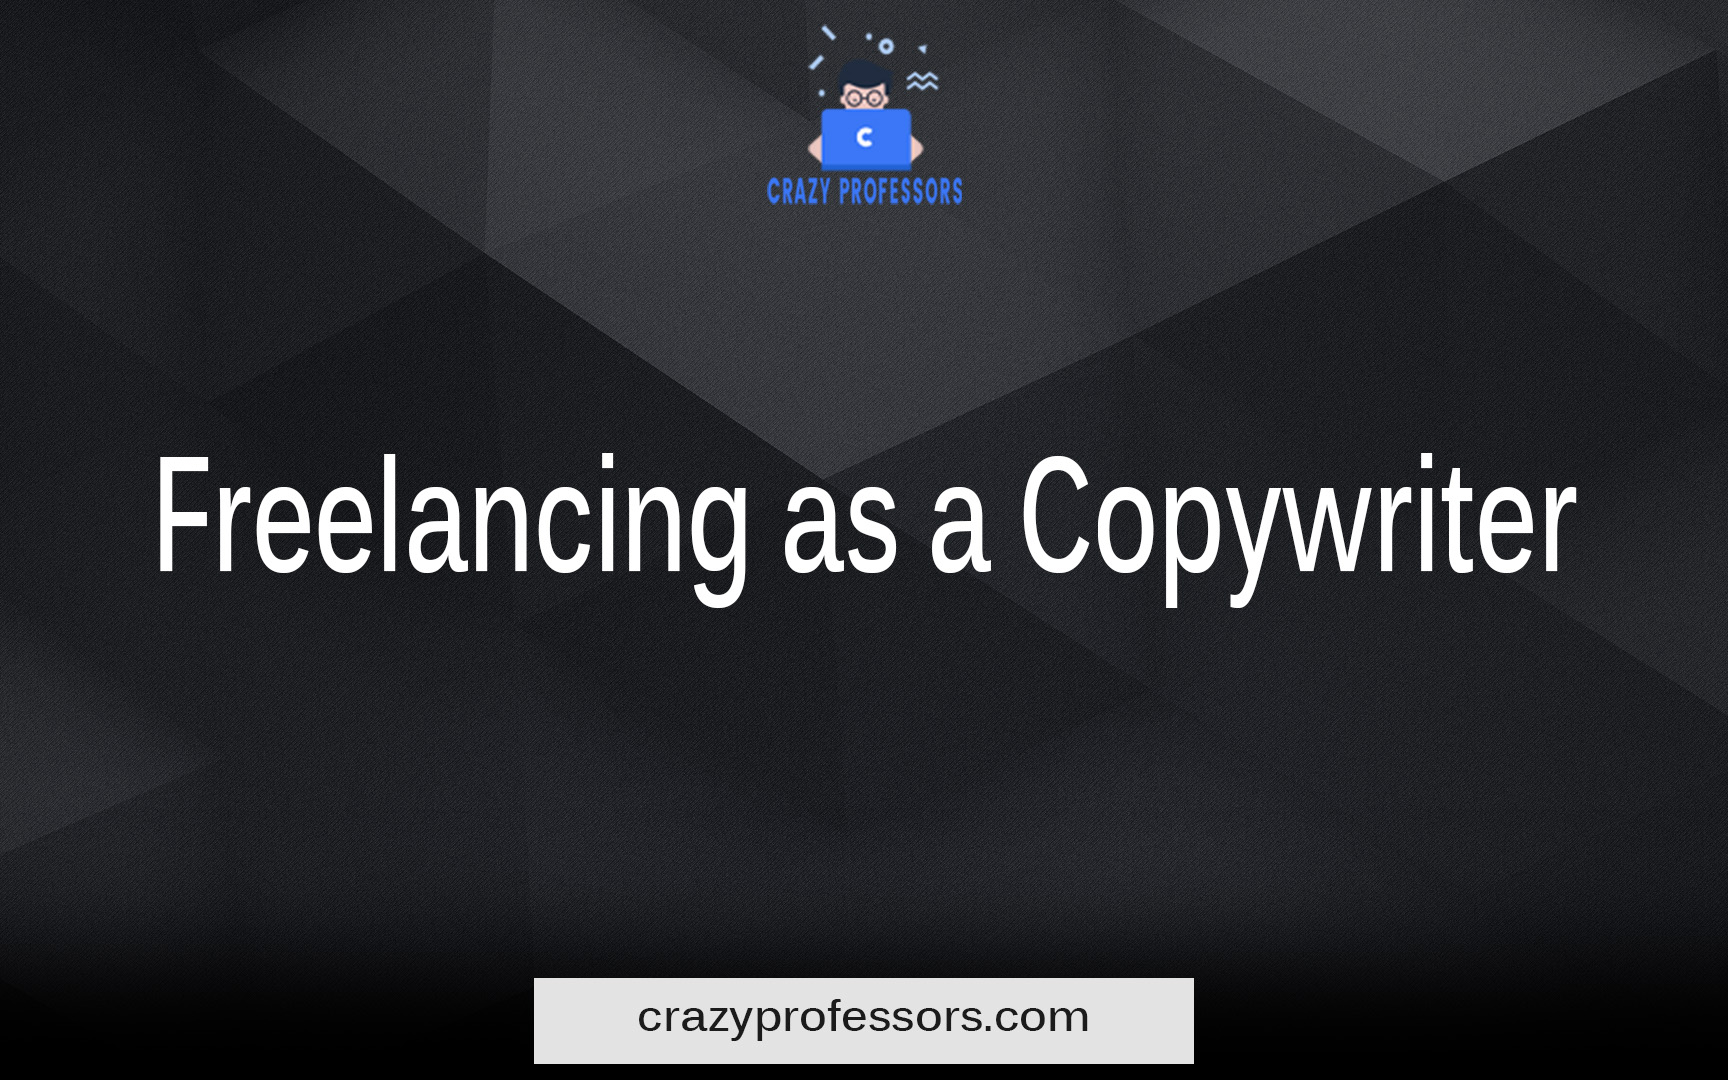 Freelancing as a Copywriter